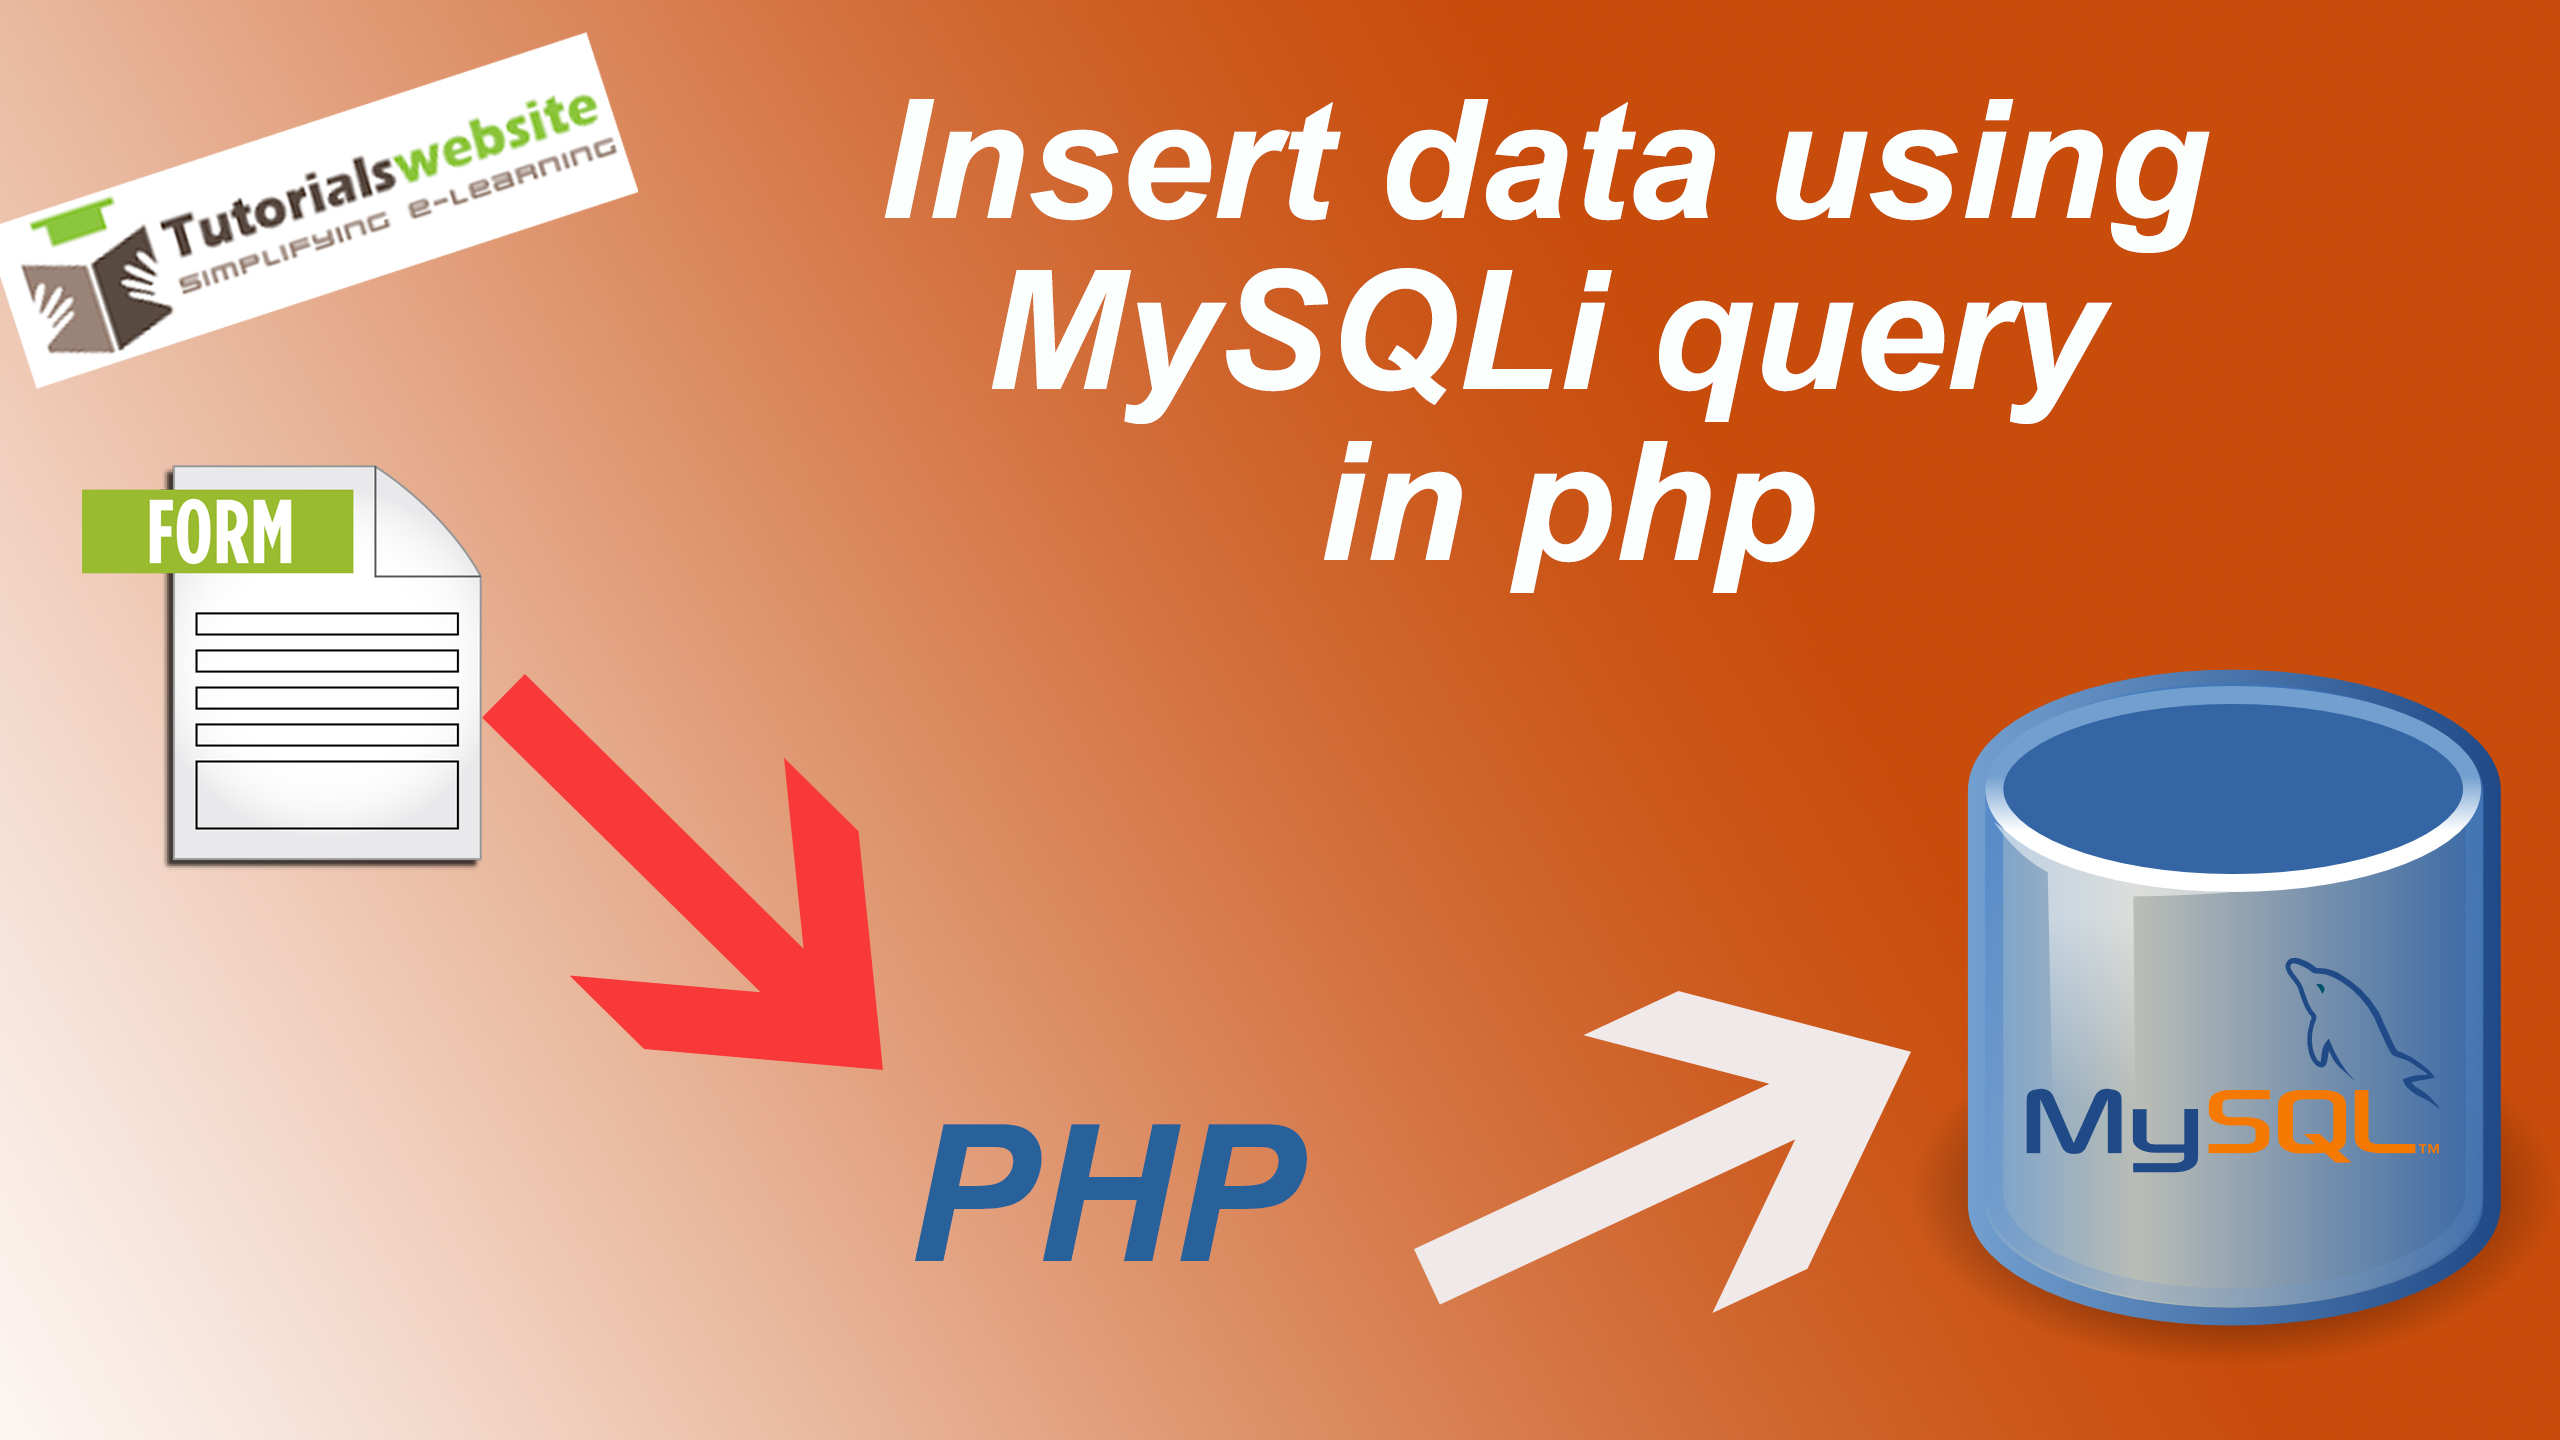 How to insert data using MySQLi query in php